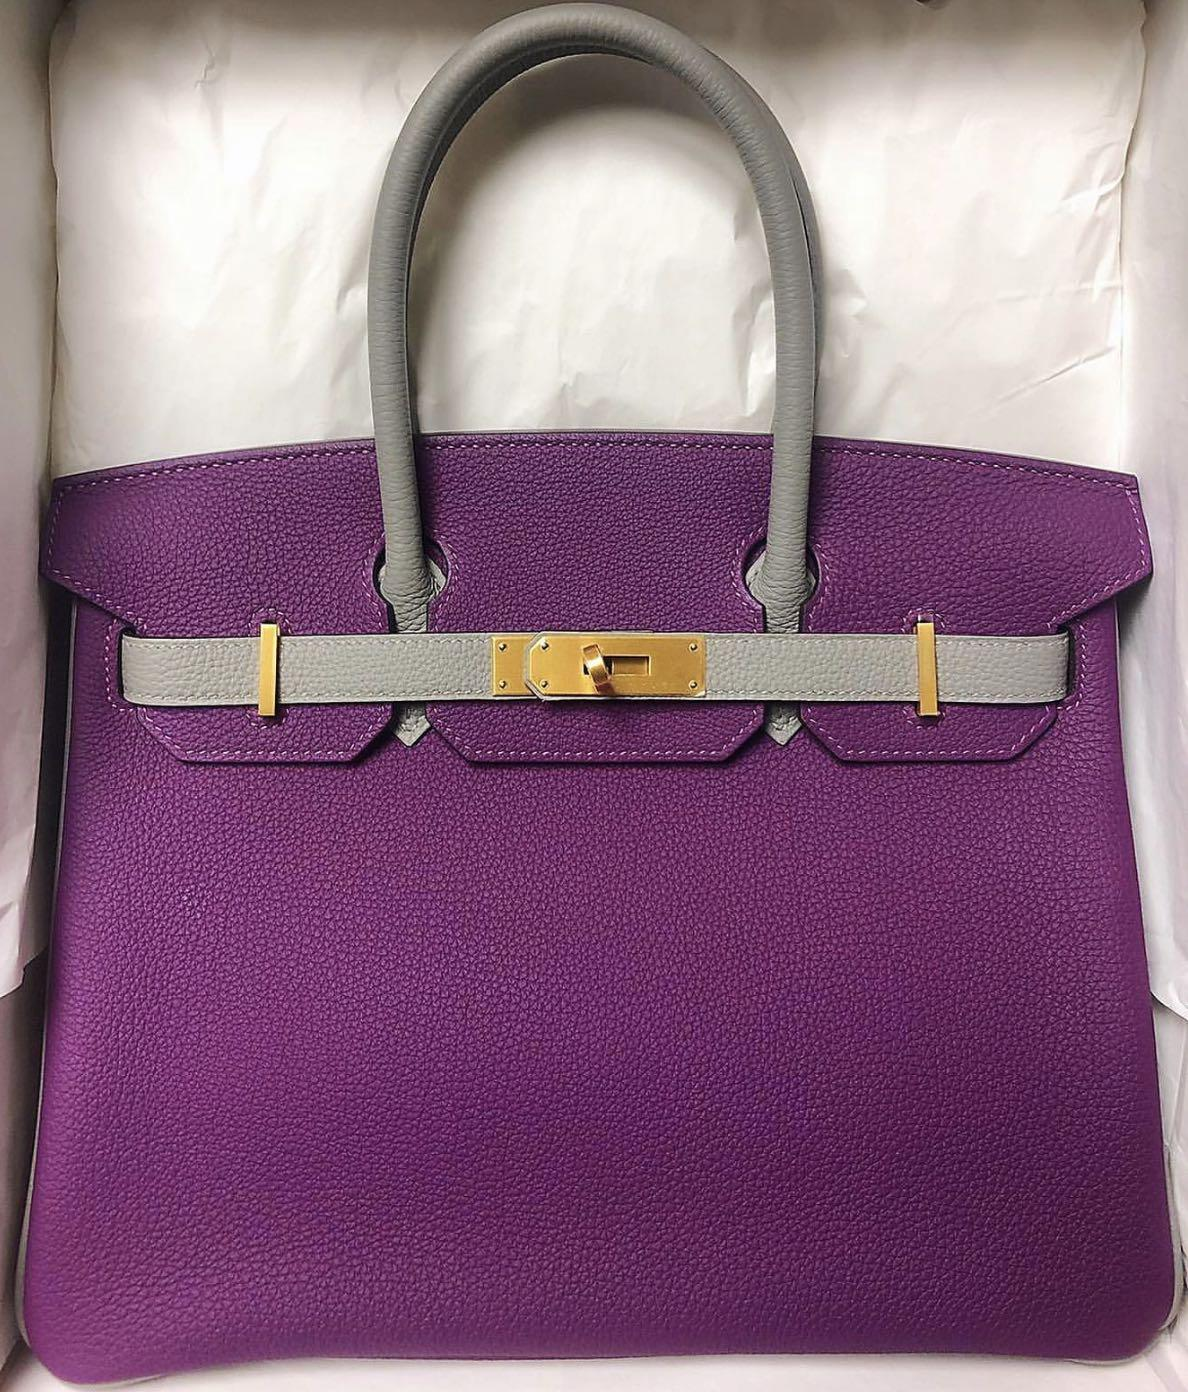 🆕 AUTHENTIC HERMES BIRKIN 30 HSS ANEMONE/GRIS MOUETTE TOGO IN BRUSHED GOLD HARDWARE